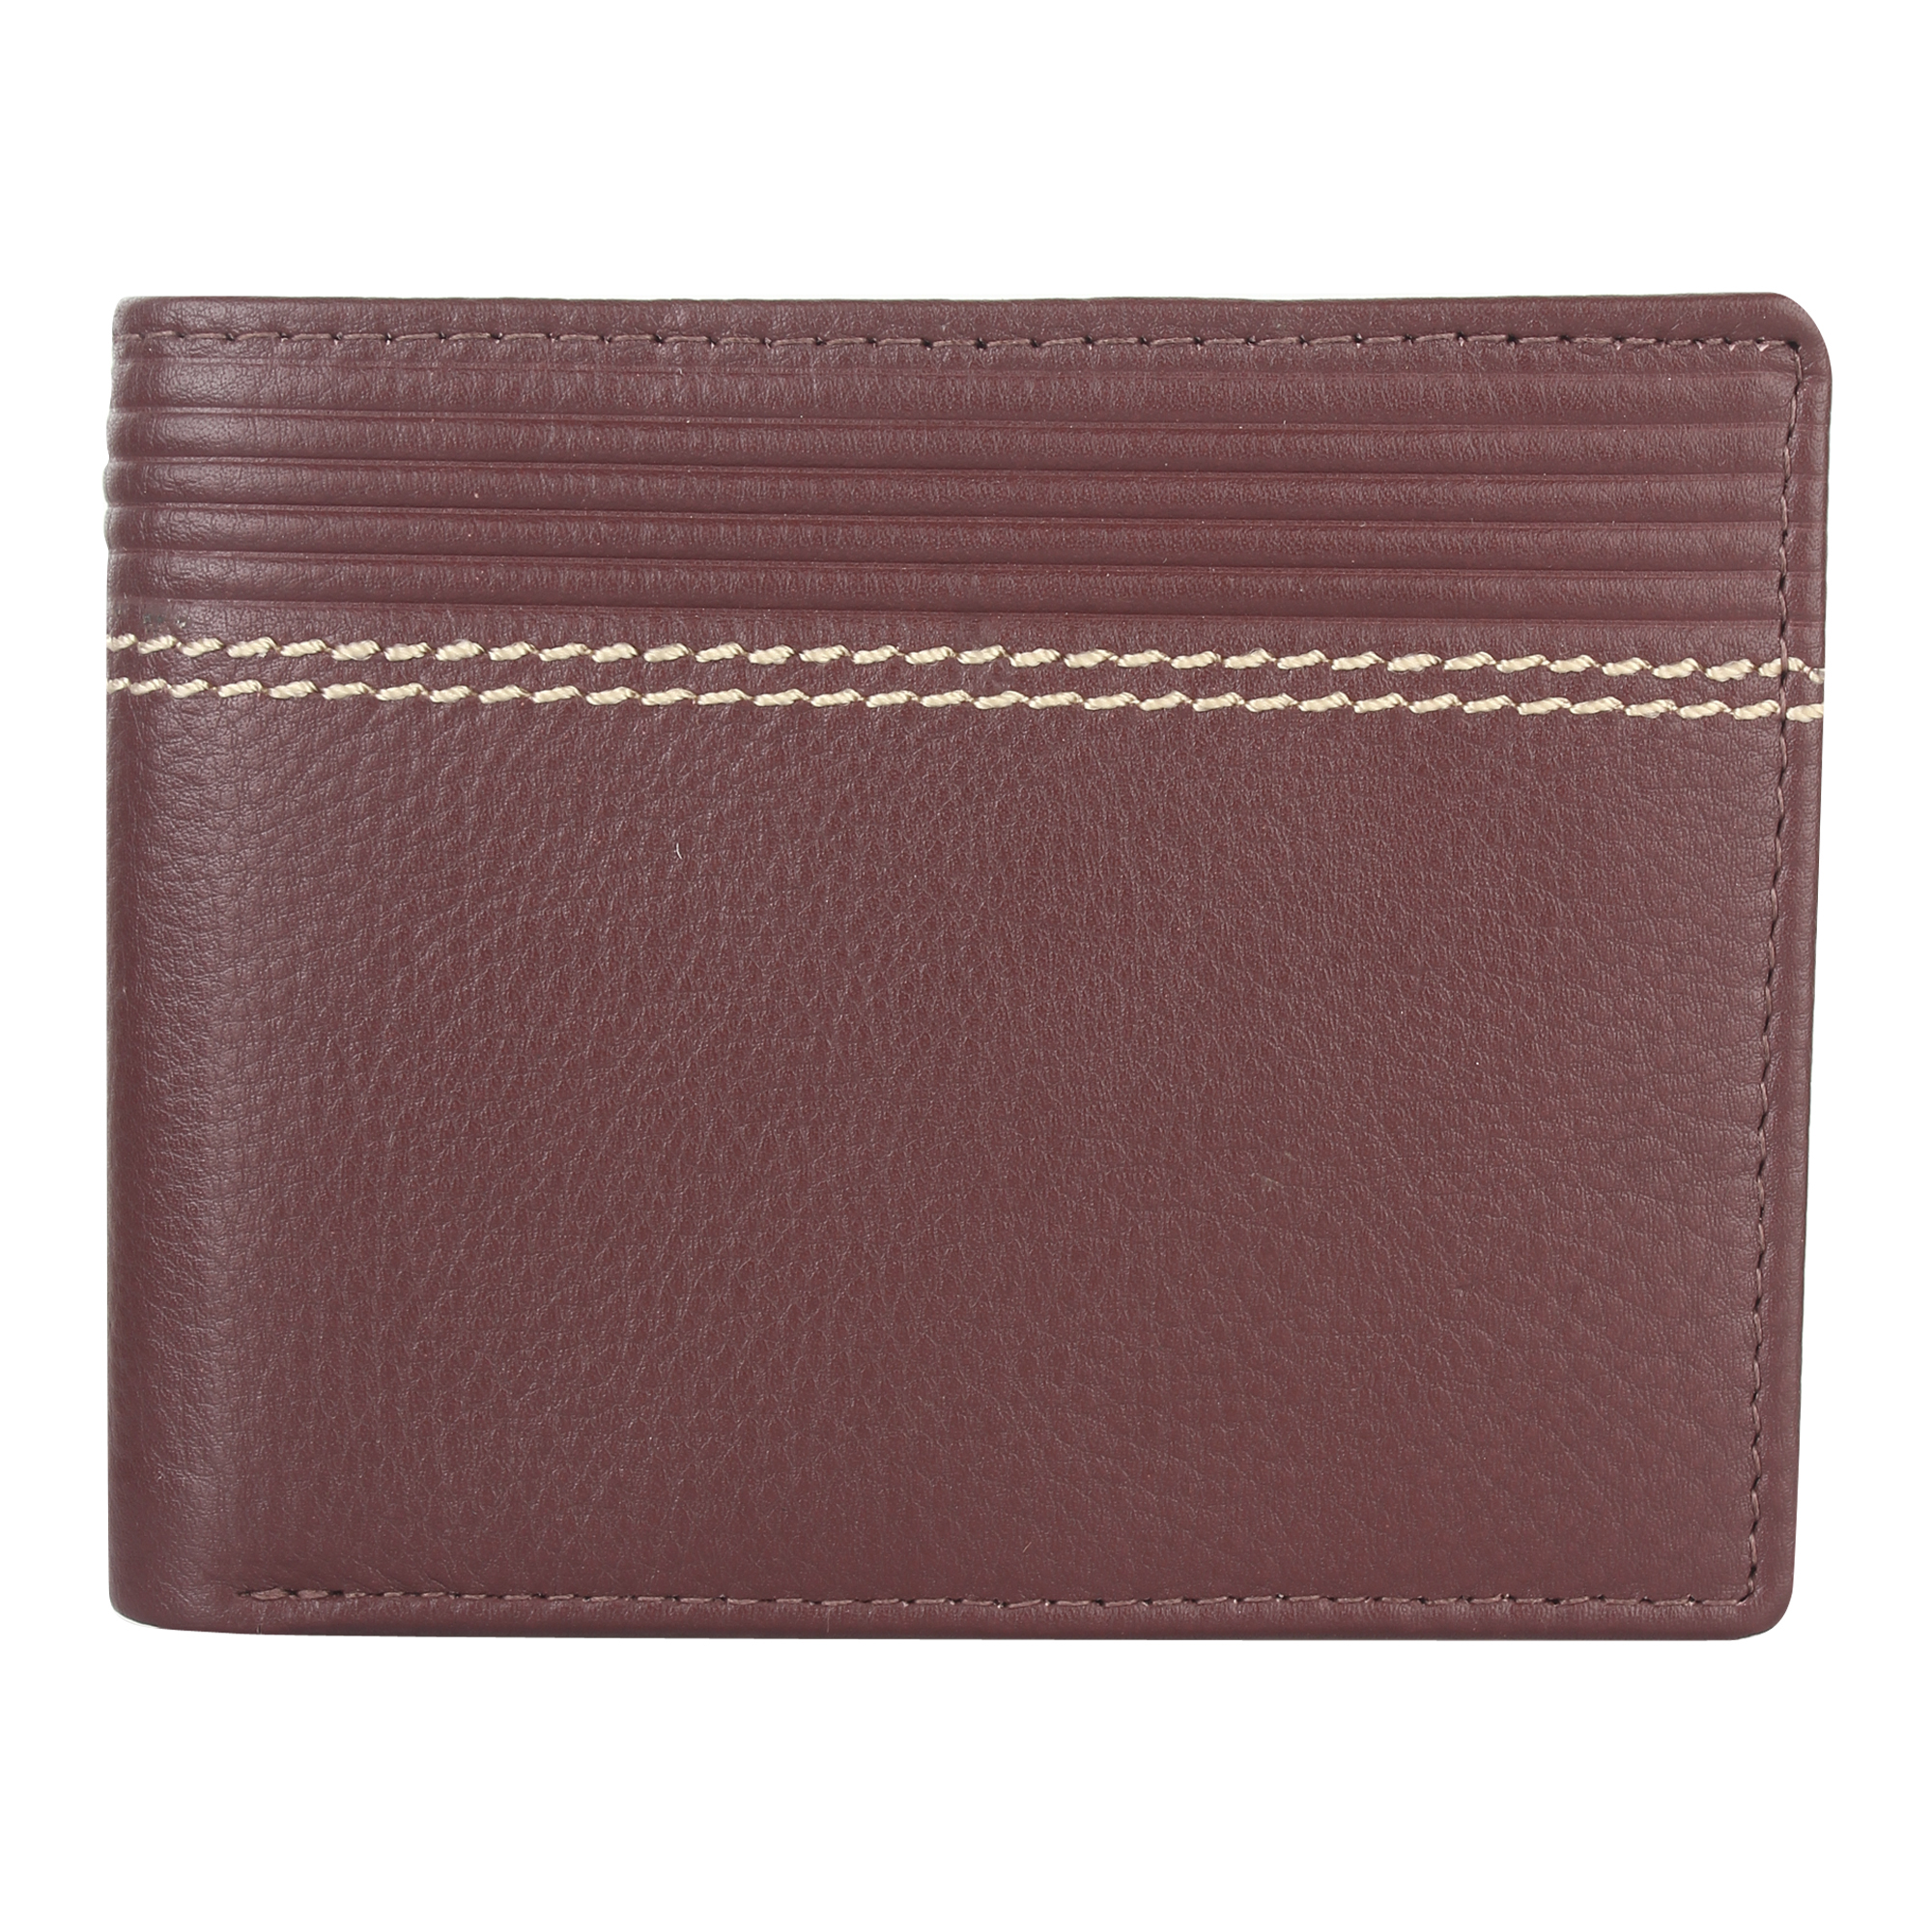 Leather Wallets Manufacturers in Australia, Leather Wallets Suppliers in Australia, Leather Wallets Wholesalers in Australia, Leather Wallets Traders in Australia